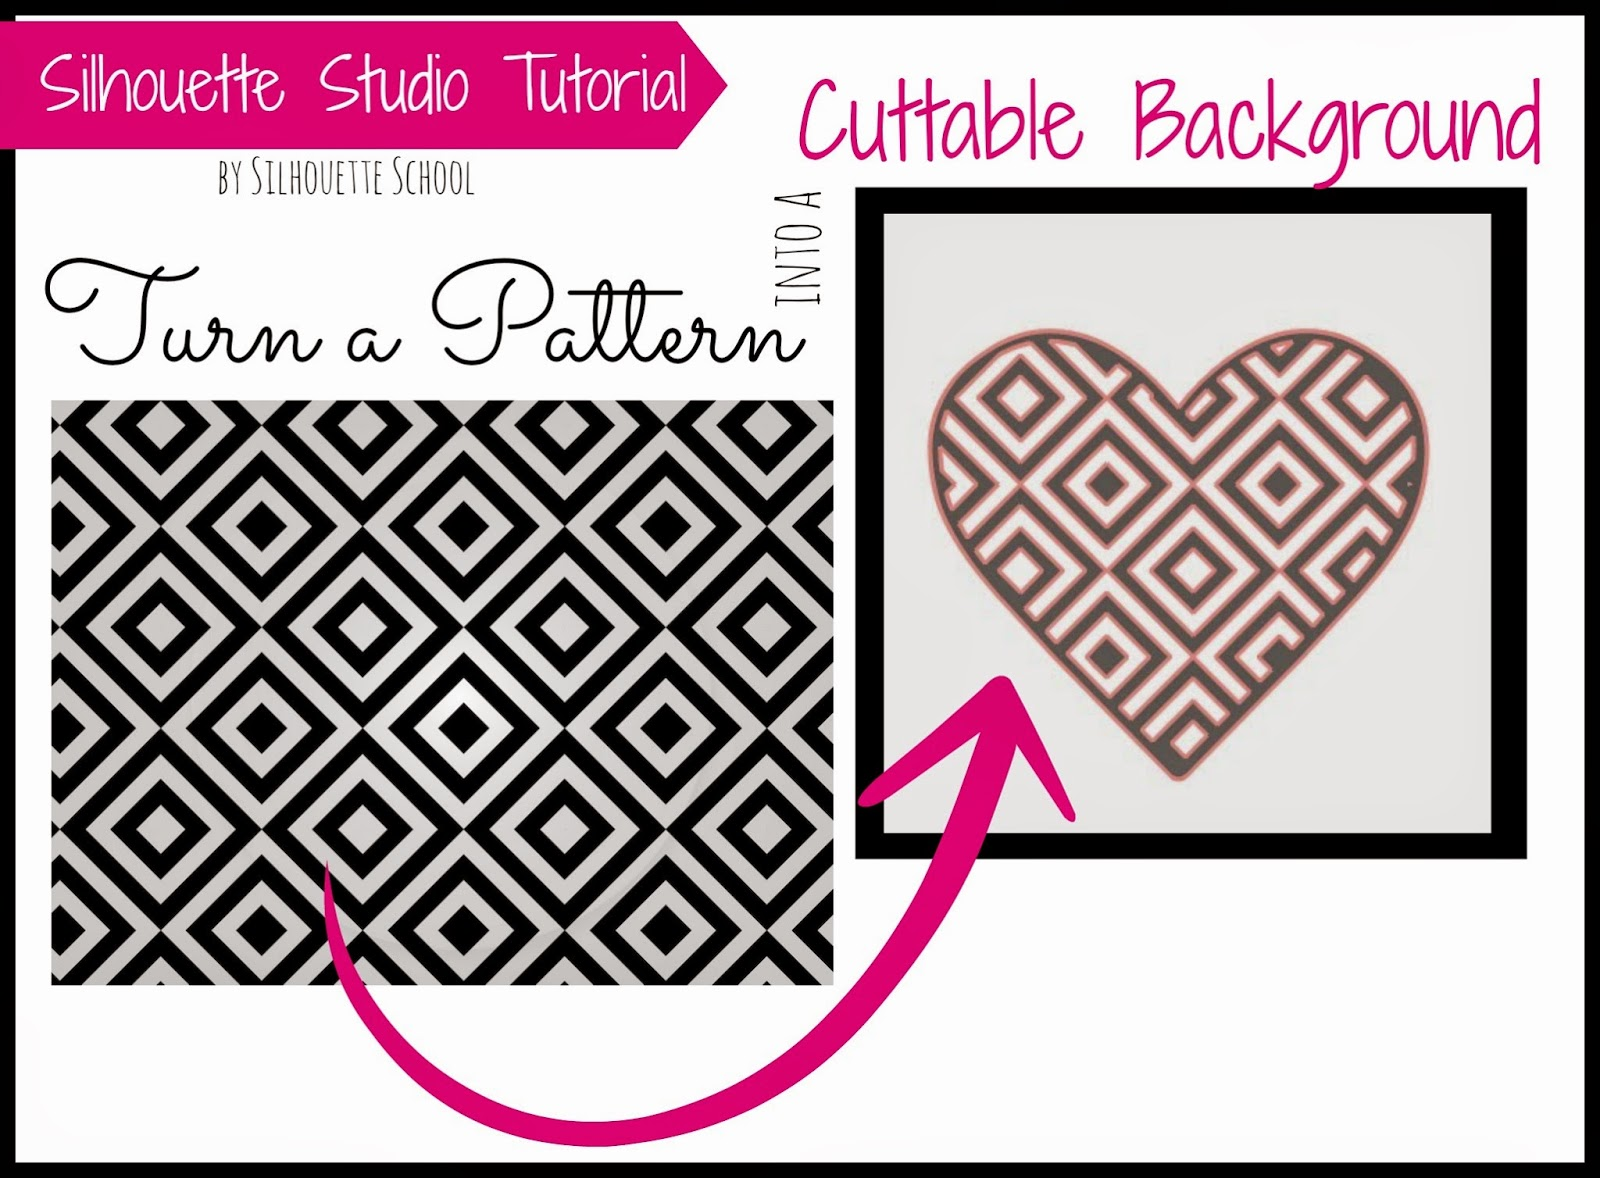 Patterns, cut files, Silhouette Studio, Silhouette tutorial